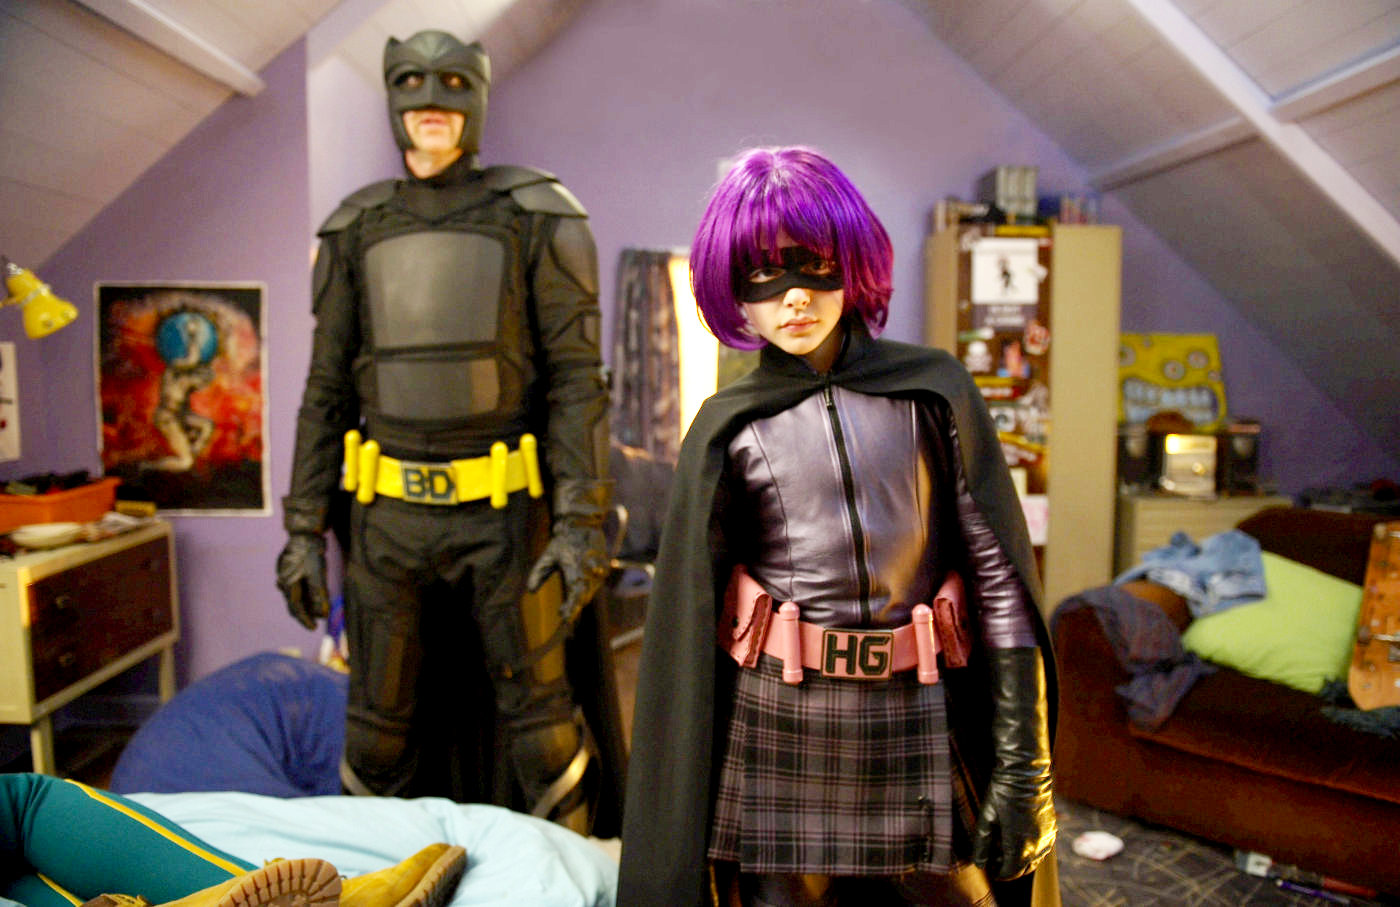 Kick-Ass Prequel In Works-hit-girl-big-daddy-story-0618-1